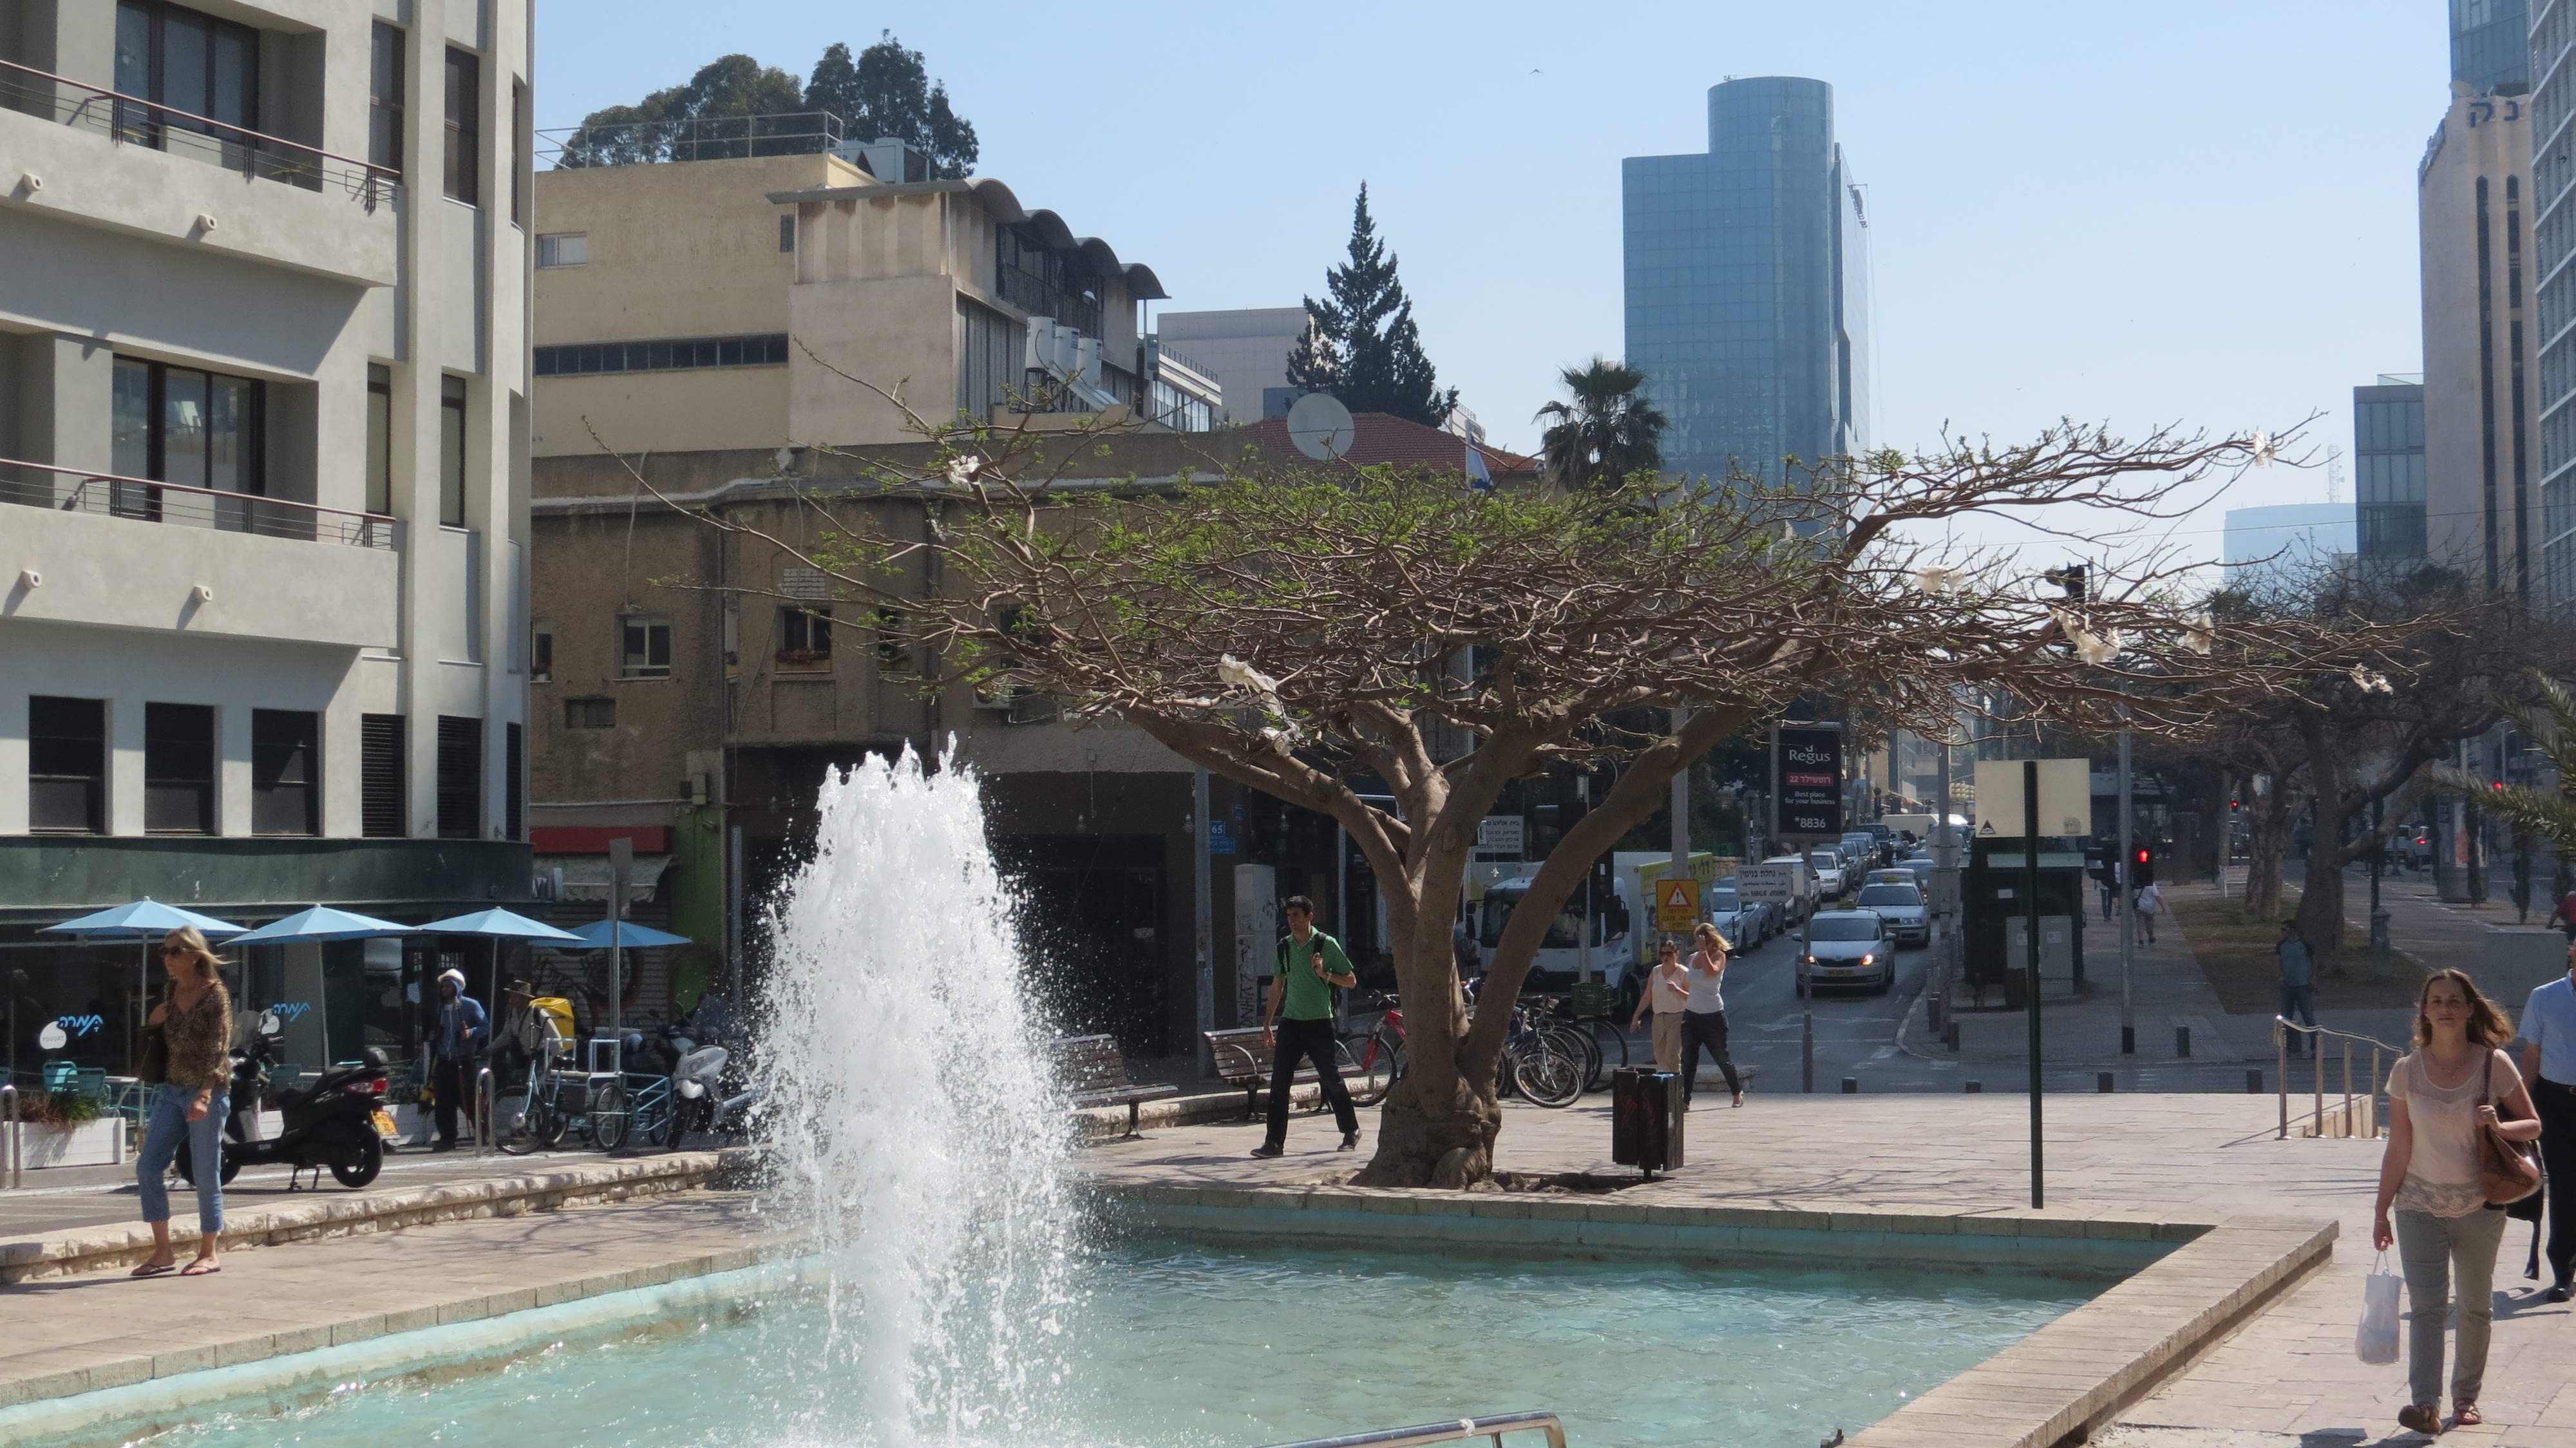 Rothschild Boulevard - Tel Aviv Founders' Monument and Fountain